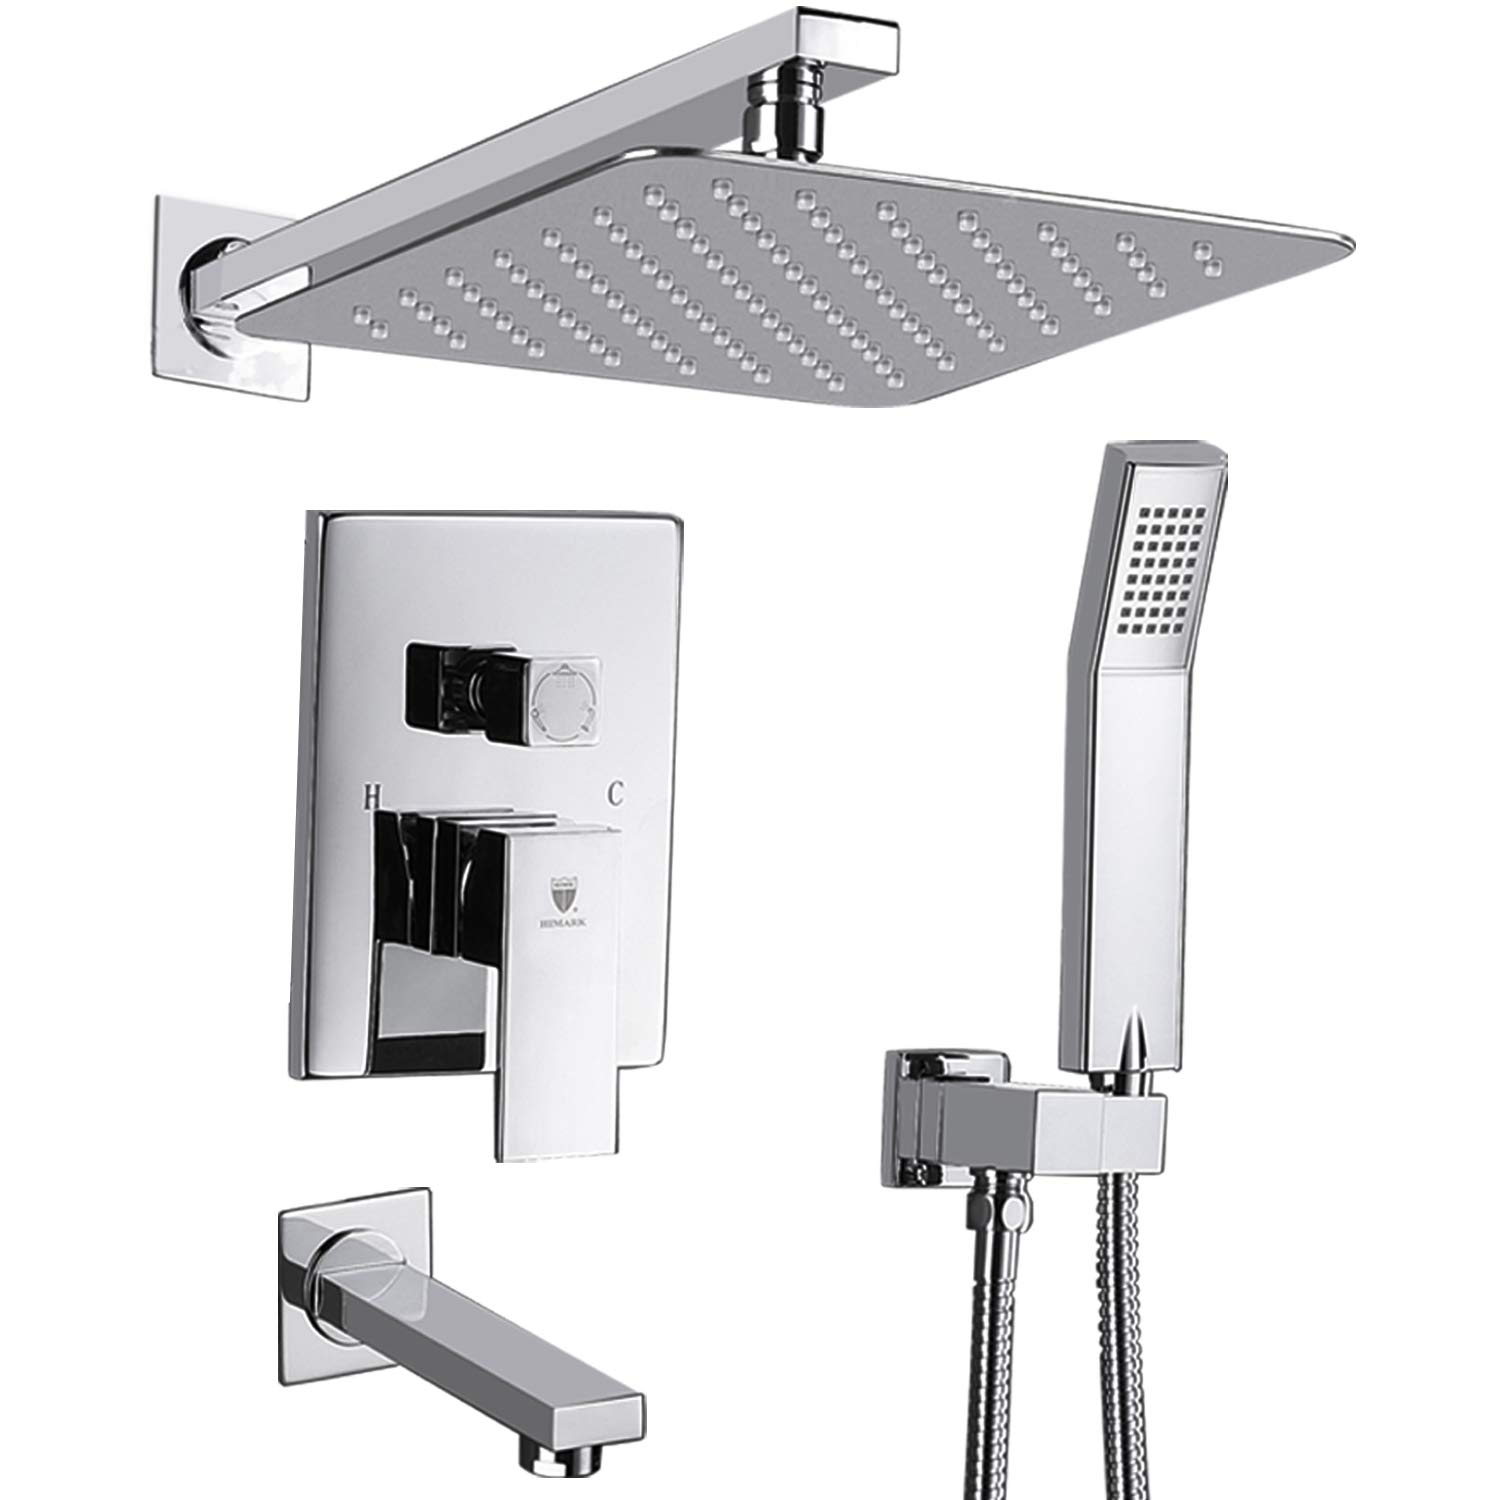 HIMK Shower System, Shower Faucet Set with Tub Spout and 10'' Rain Shower Head Wall Mounted Shower Set (Contain Shower Faucet Rough-In Valve),Chrome